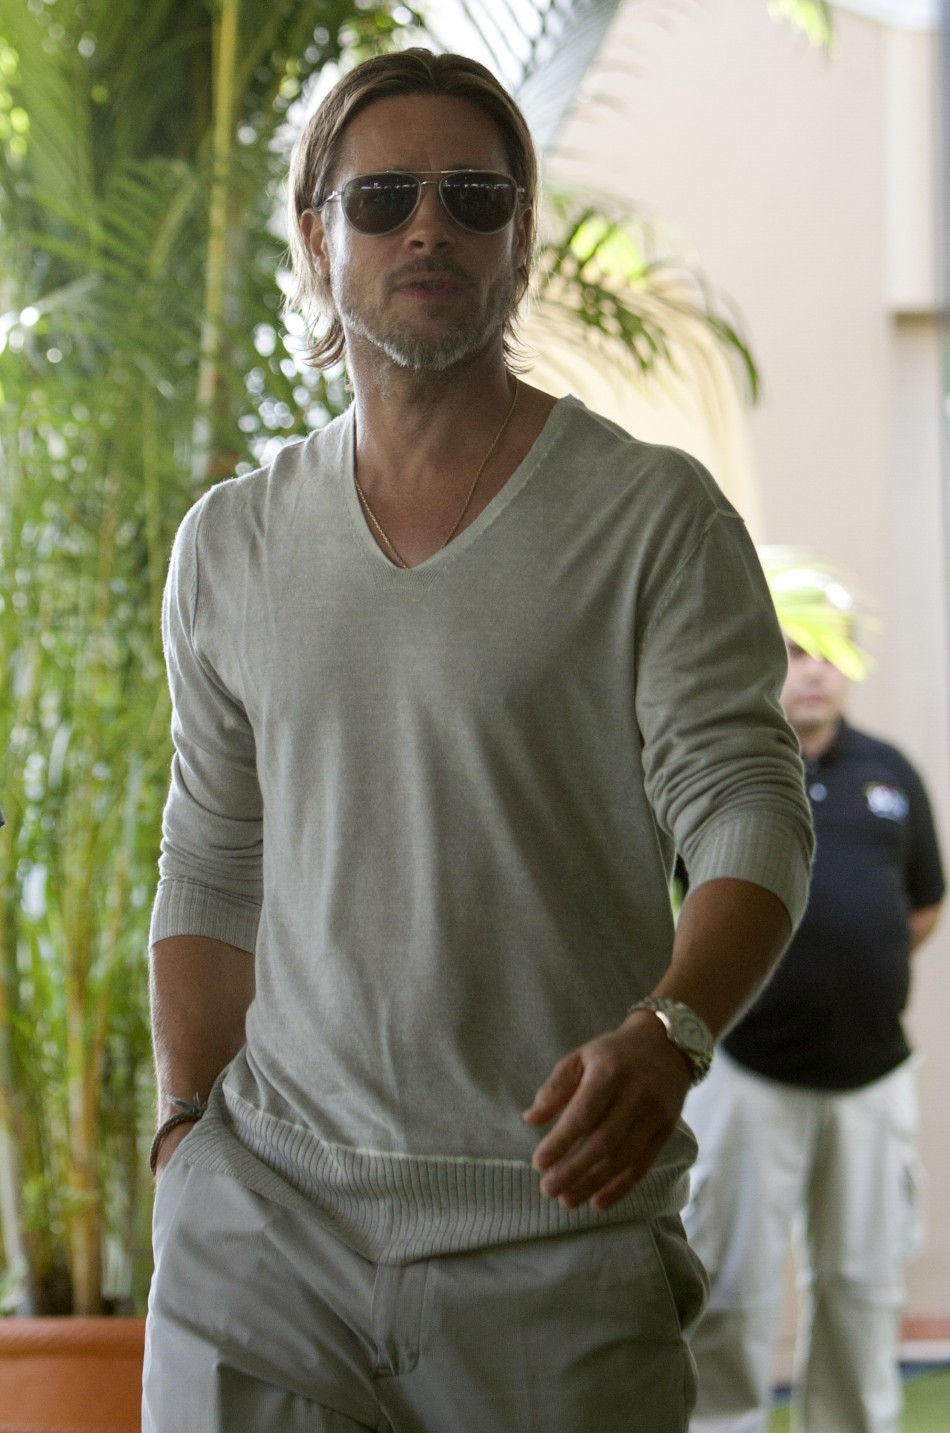 U.S. actor Brad Pitt poses during a photocall for his film quotMoneyballquot in Cancun